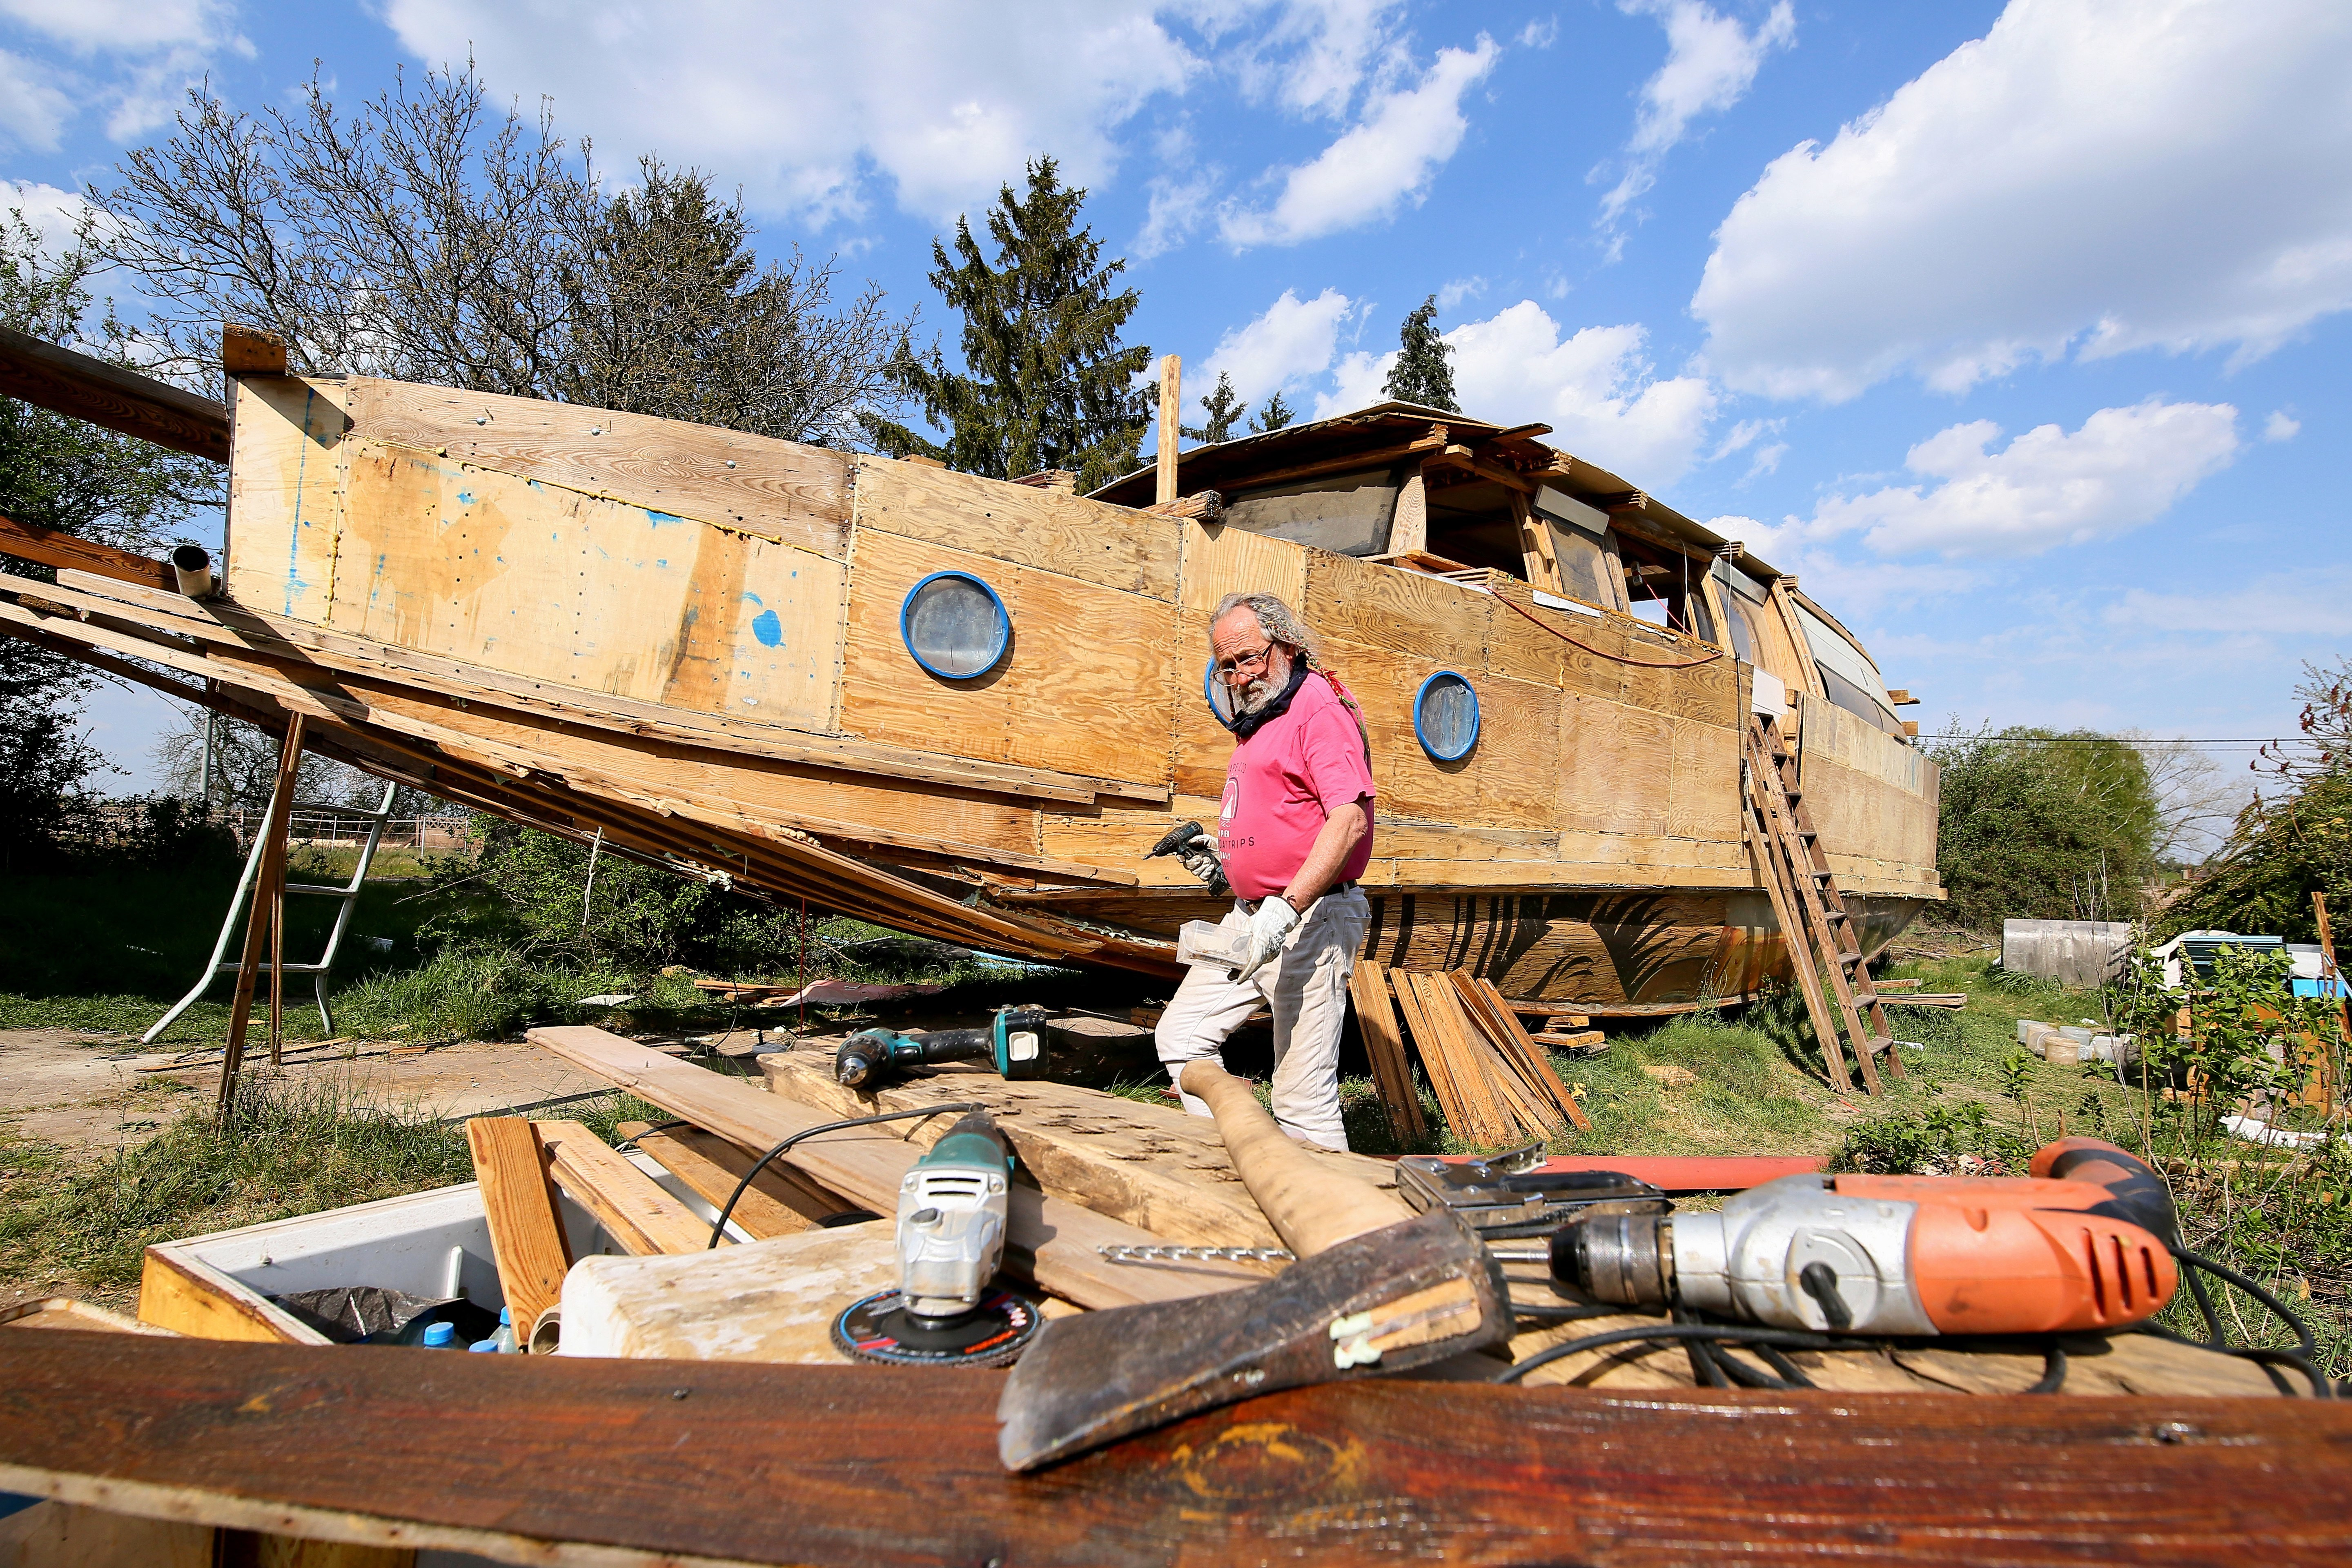 Floating dream house: pensioner builds houseboat out of recycled scraps from destroyed house